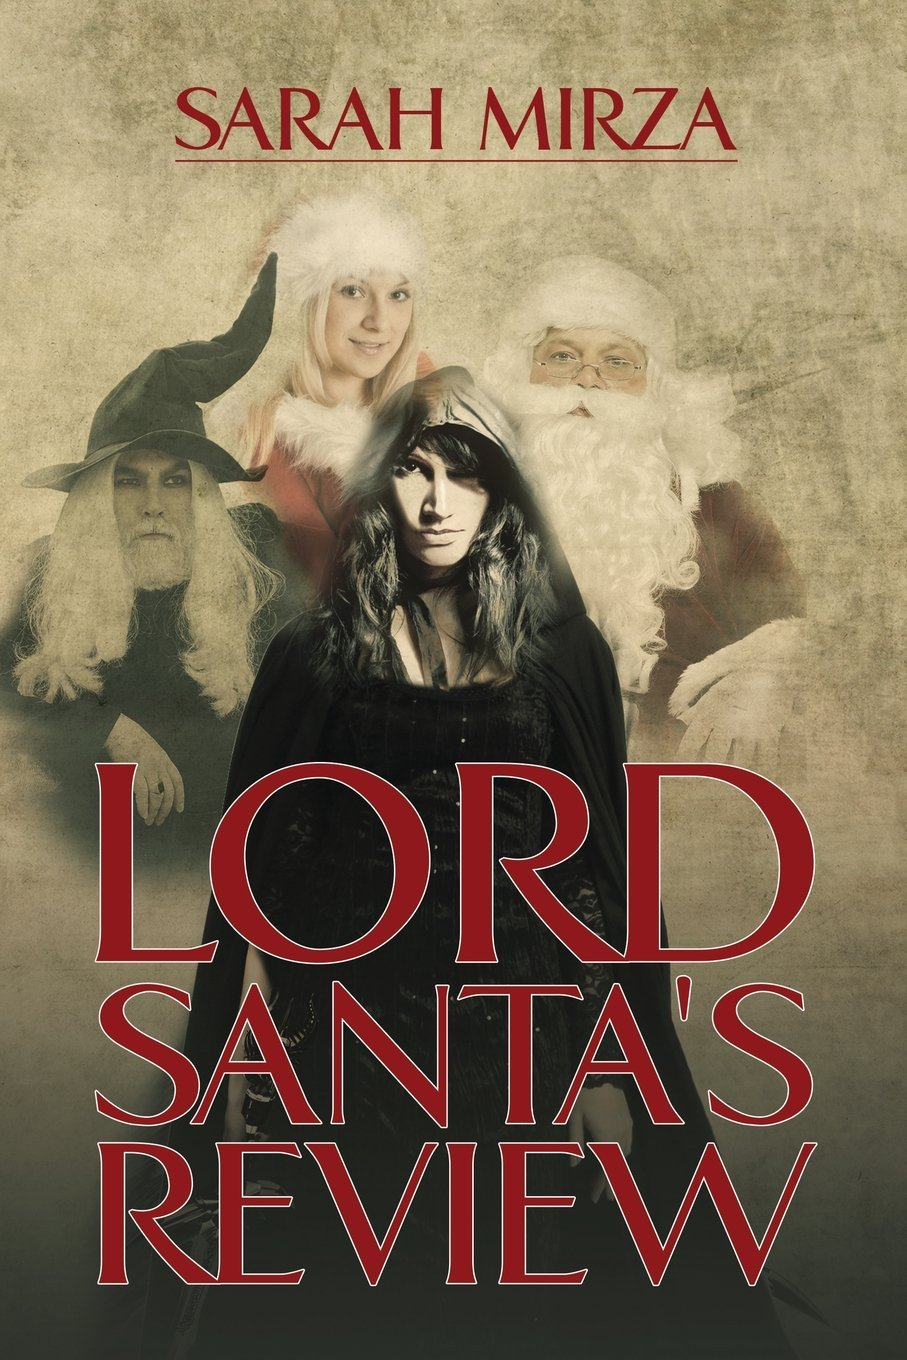 Sarah Mirza opens up the world of the Light Warriors in her book 'Lord Santa's Review'